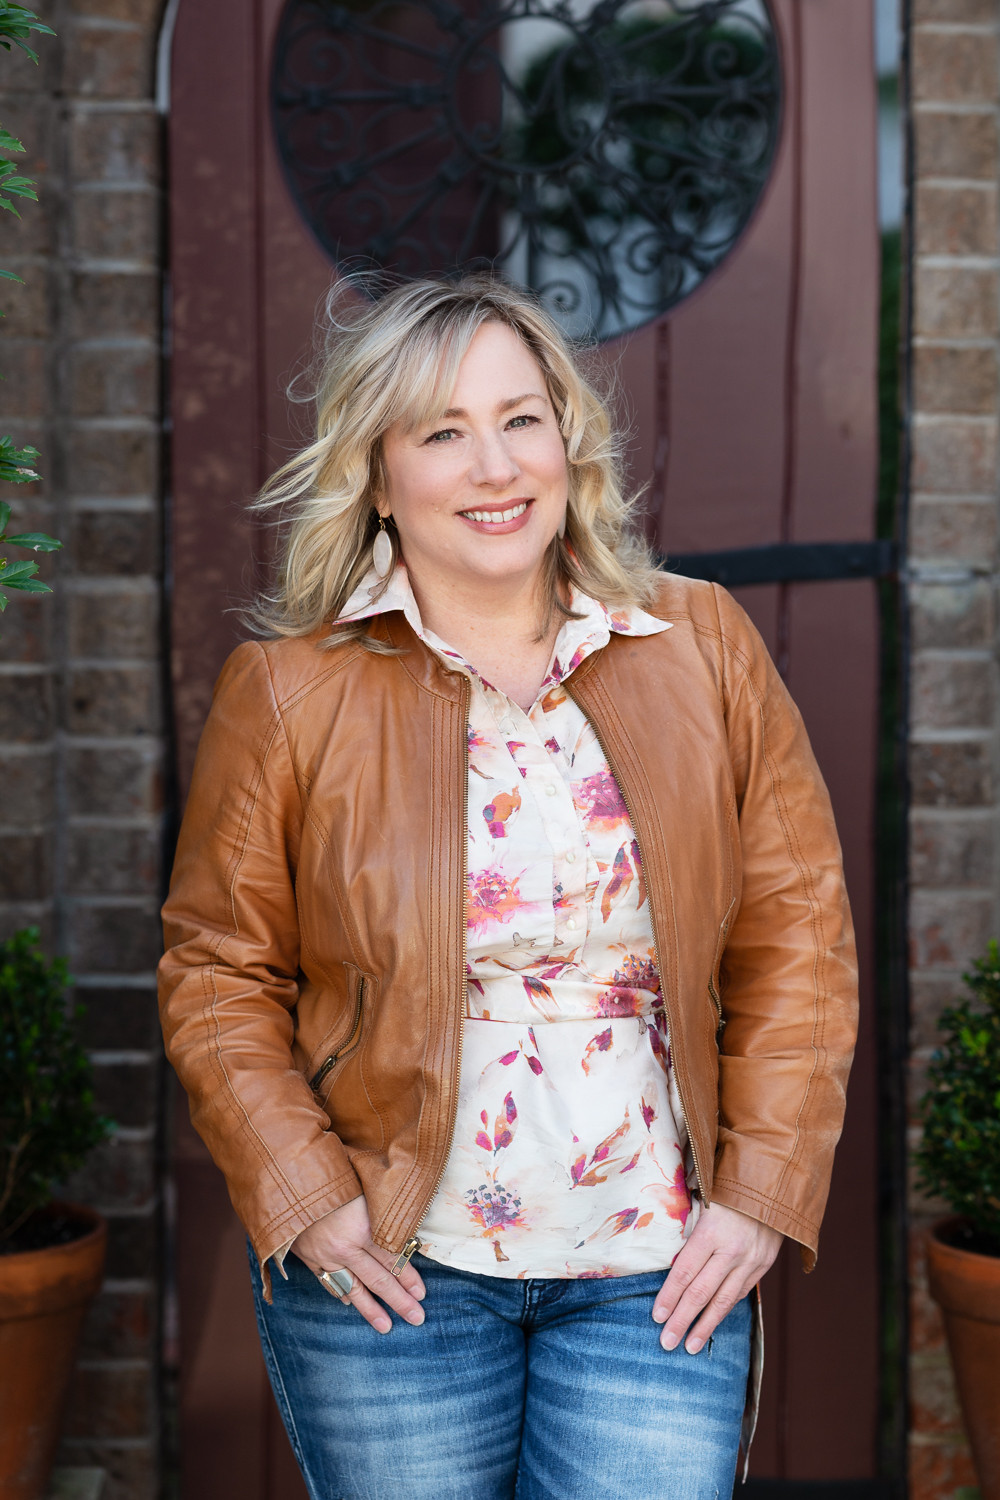 headshot of woman in leather jacket, smiling and happy, downtown Southern Pines